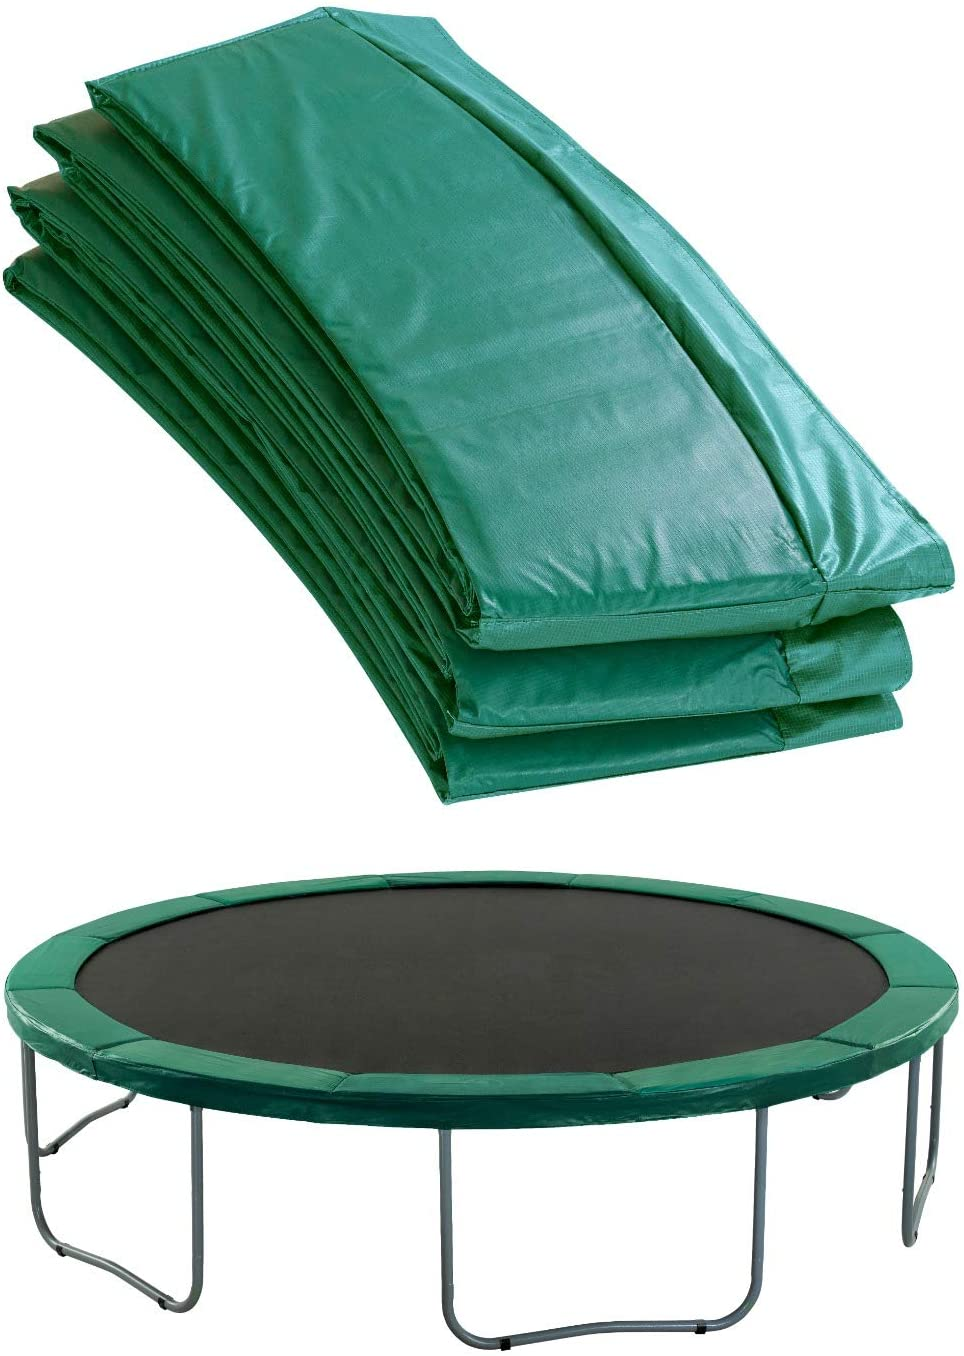 Upper Bounce Trampoline Replacement Pad